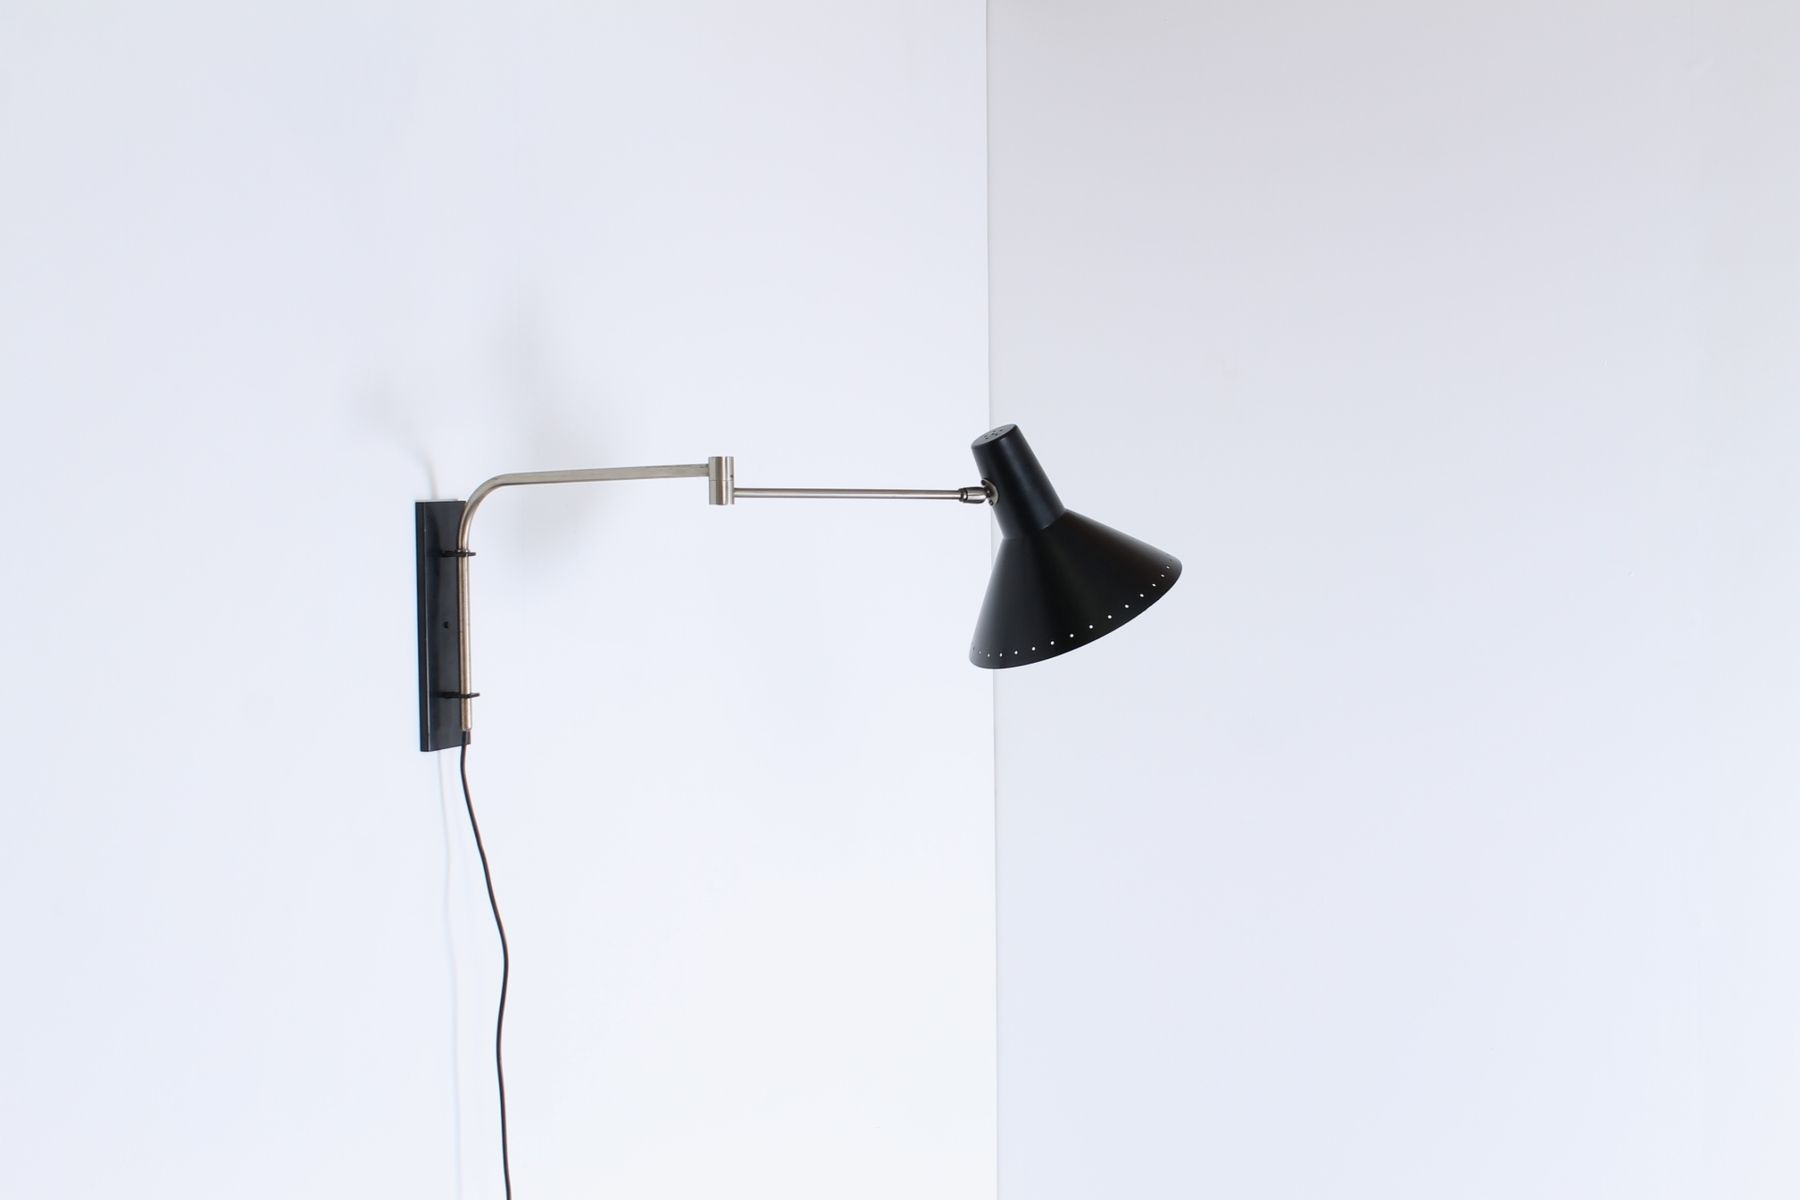 Wall Mounted Swinging Arm Industrial Light from Artimeta, 1950s for sale at Pamono